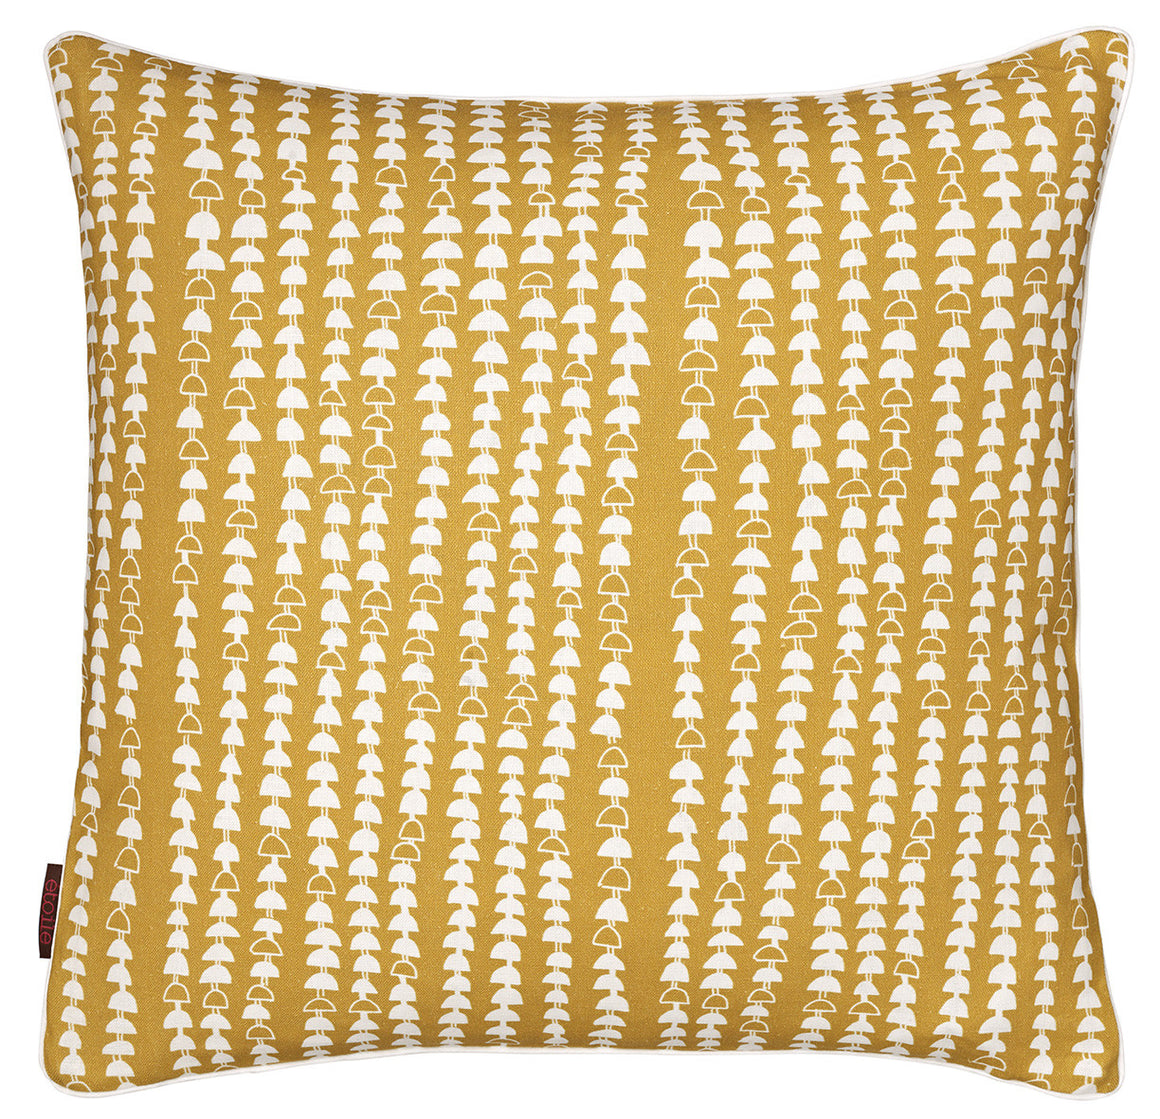 Hopi Graphic Patterned Linen Cushion in Mustard Gold